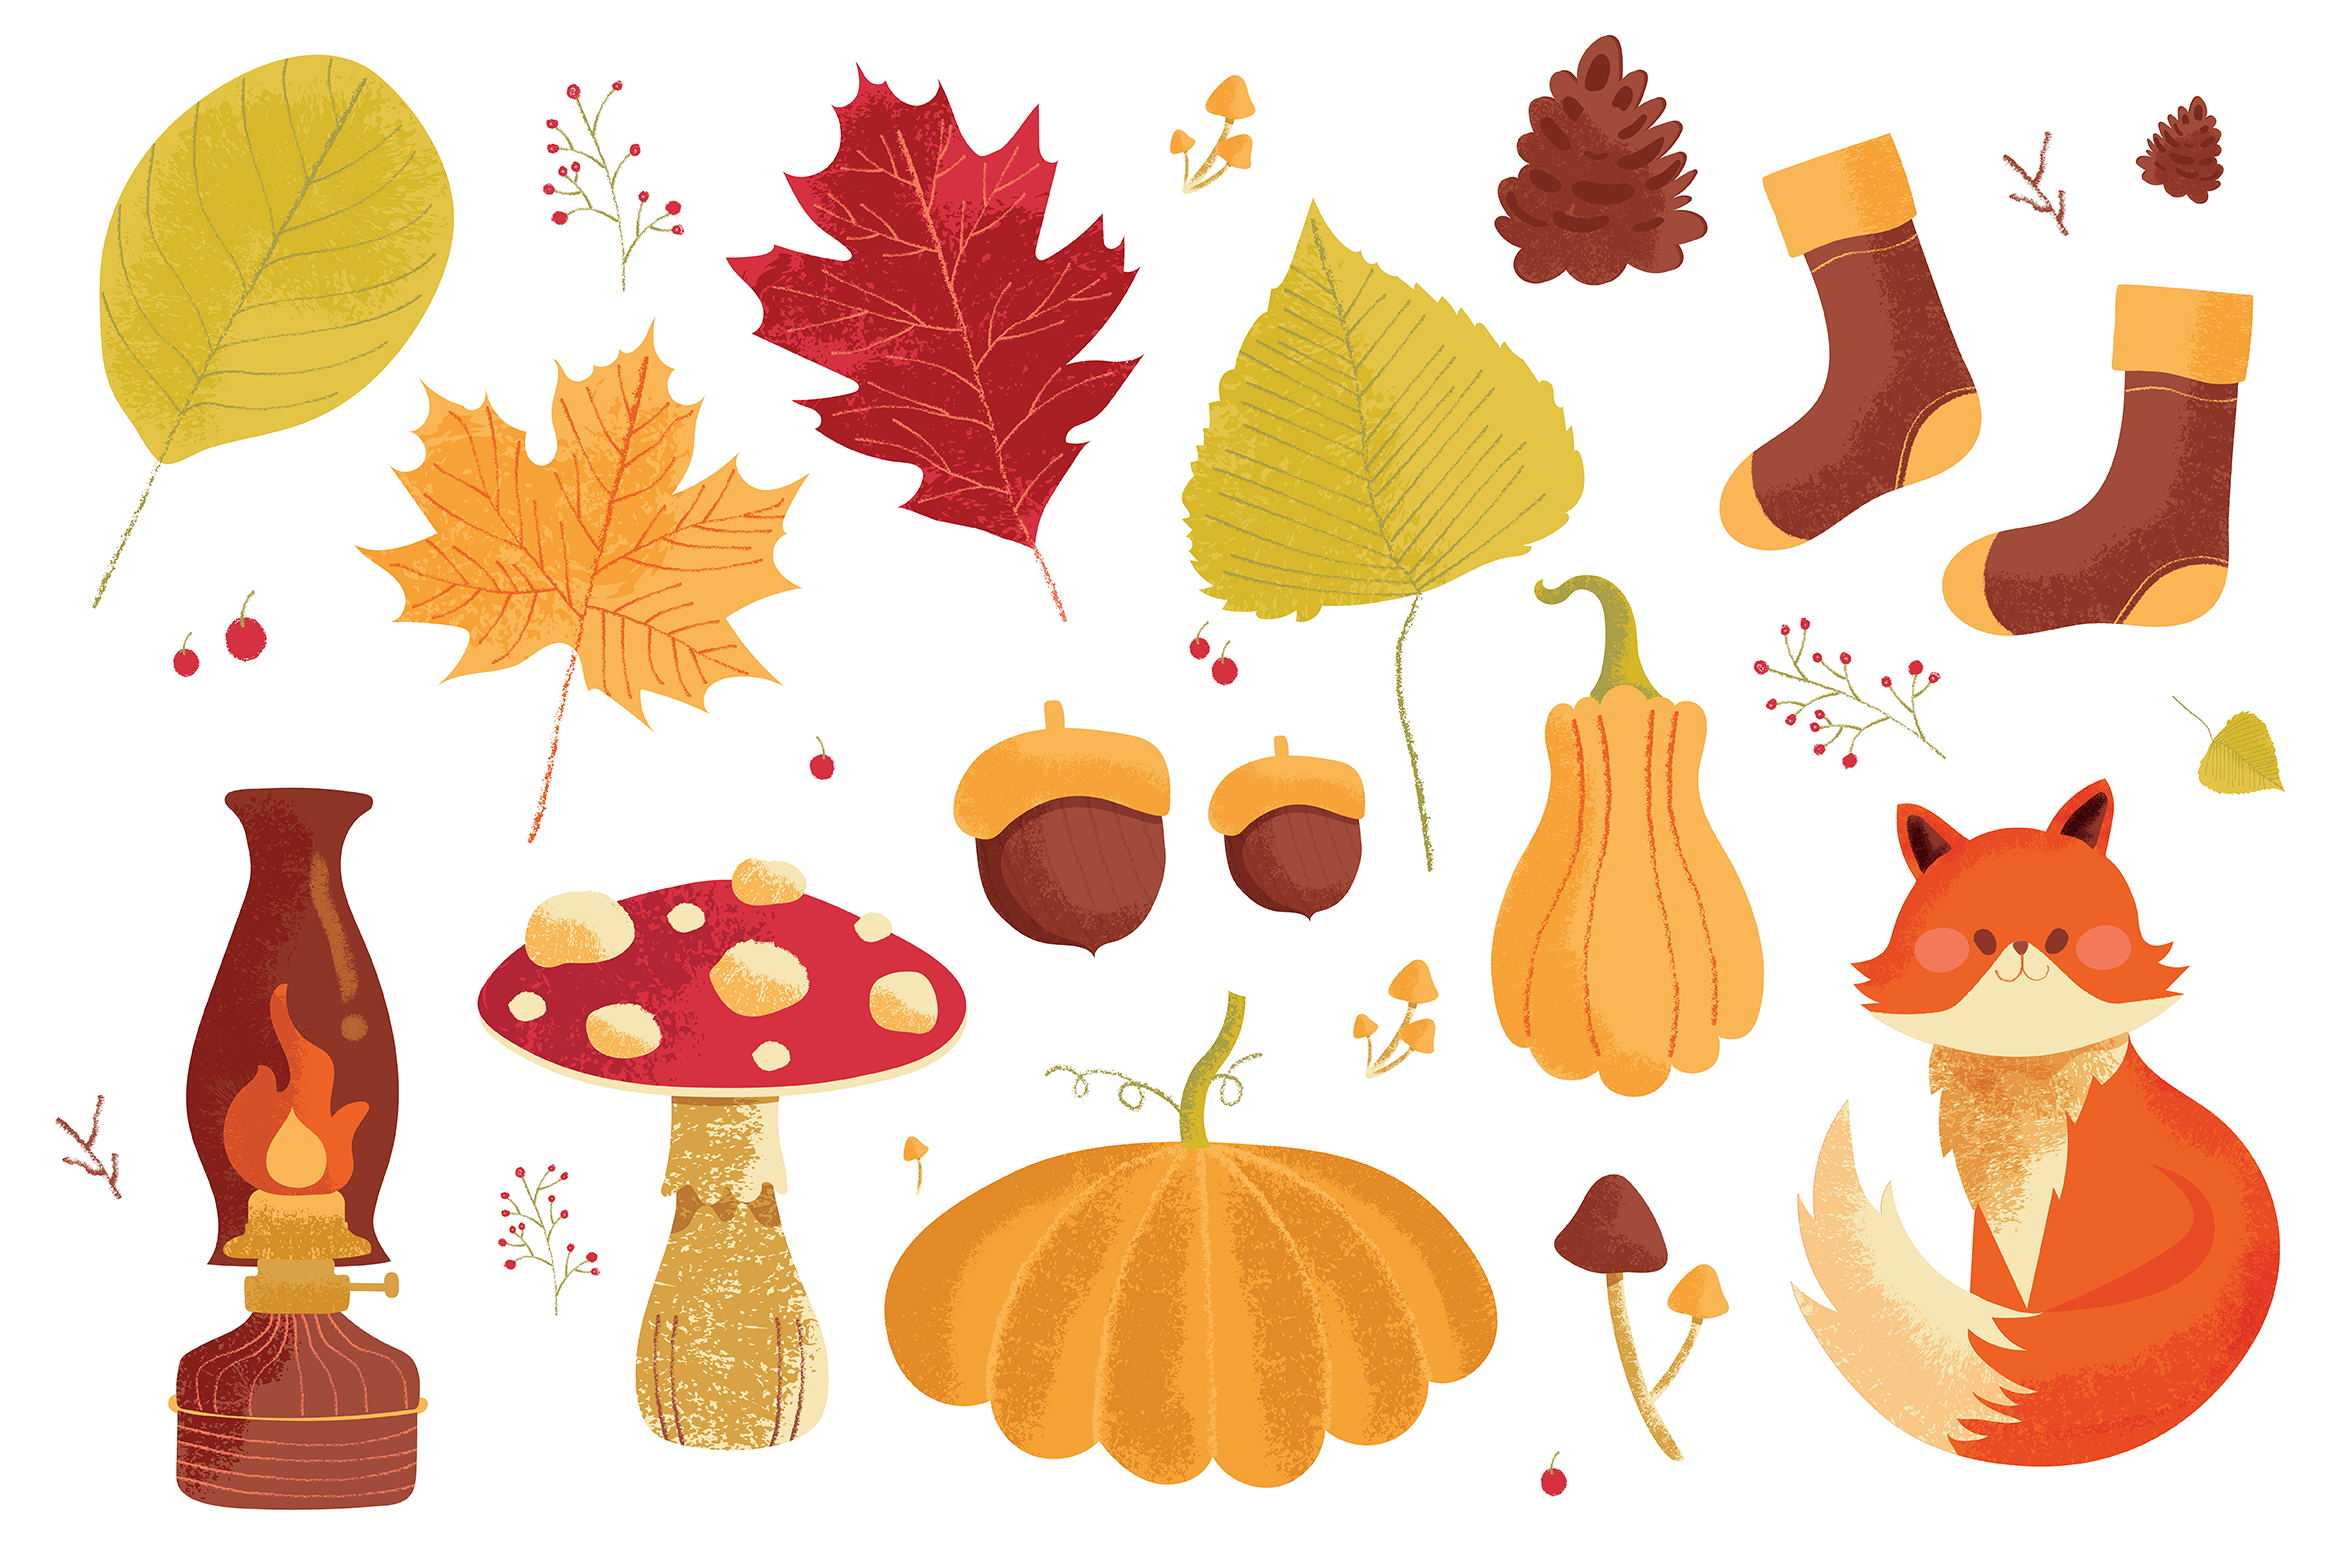 Autumn Fall Leaves Vector Clipart Illustrations